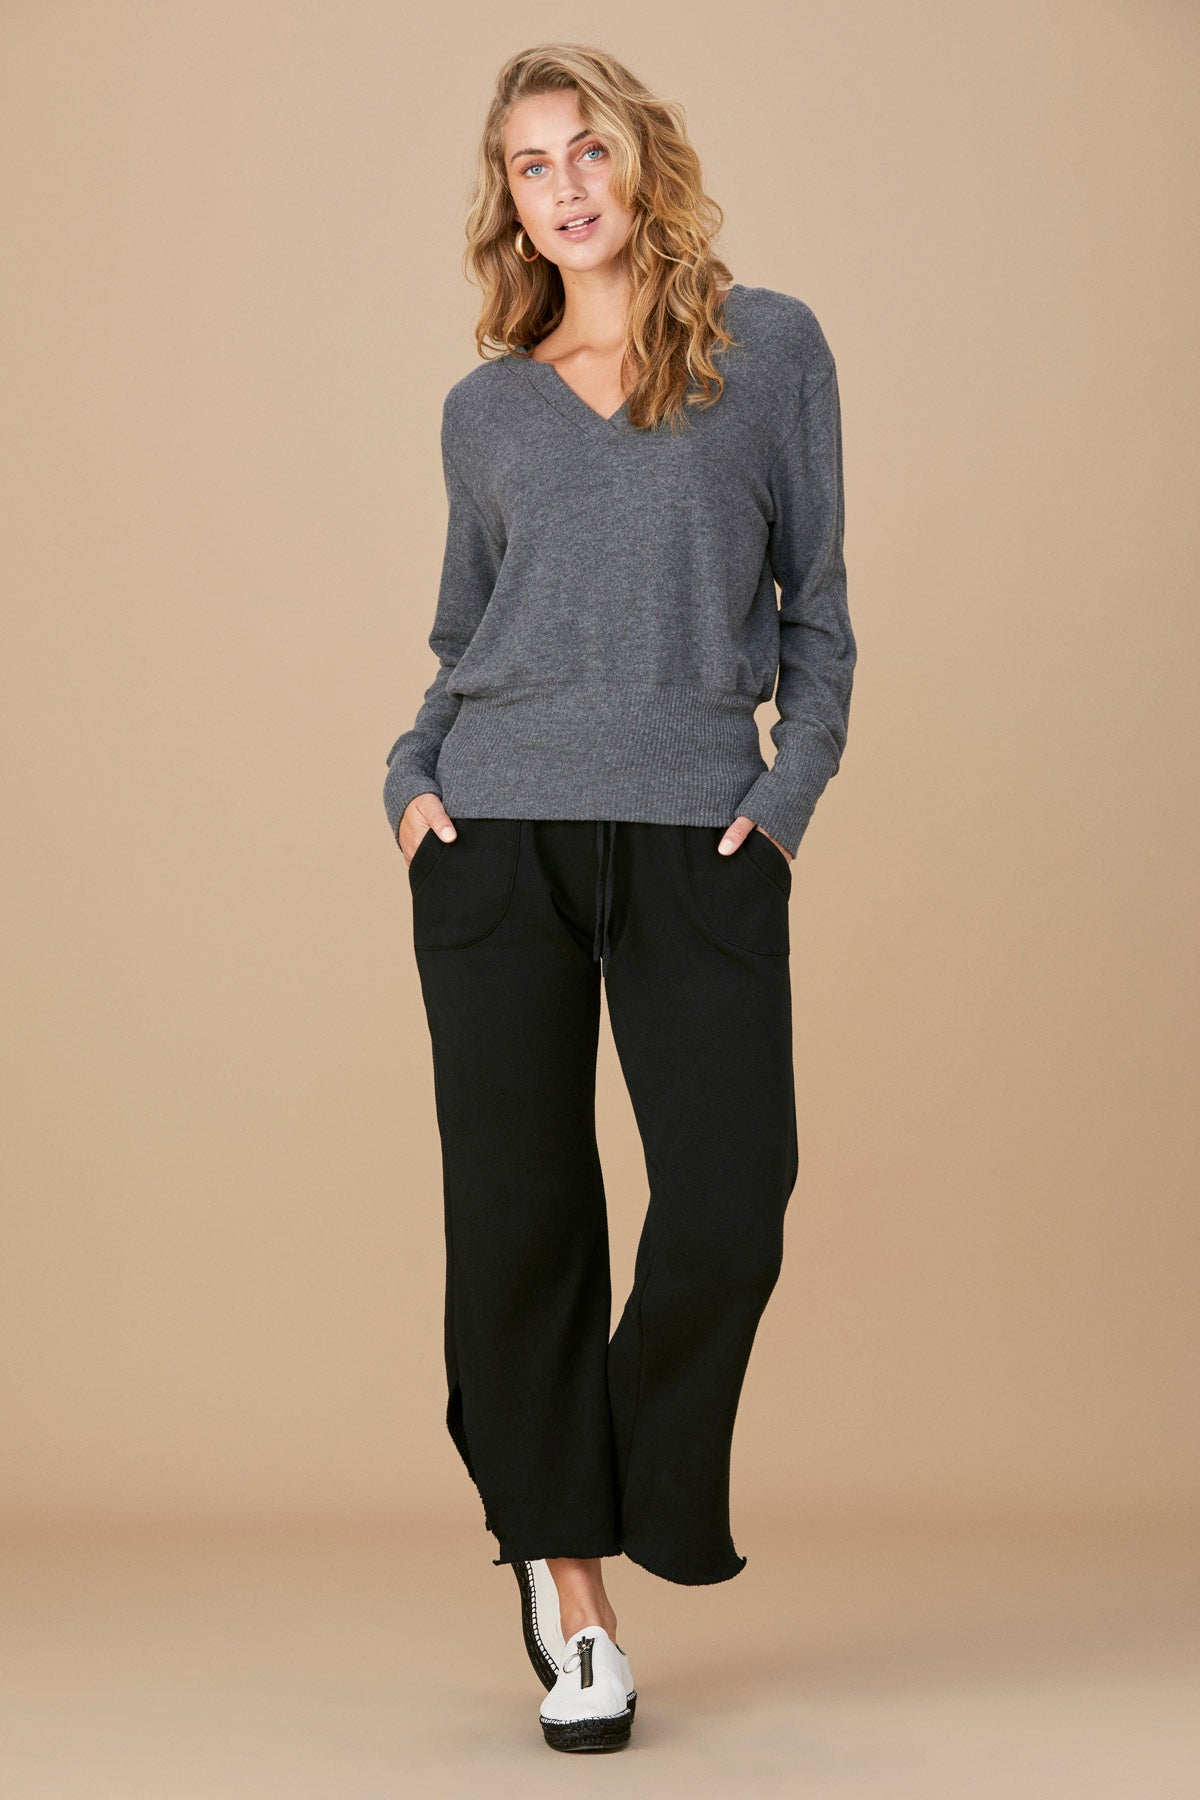 Brushed Ross Sweater - Marengo